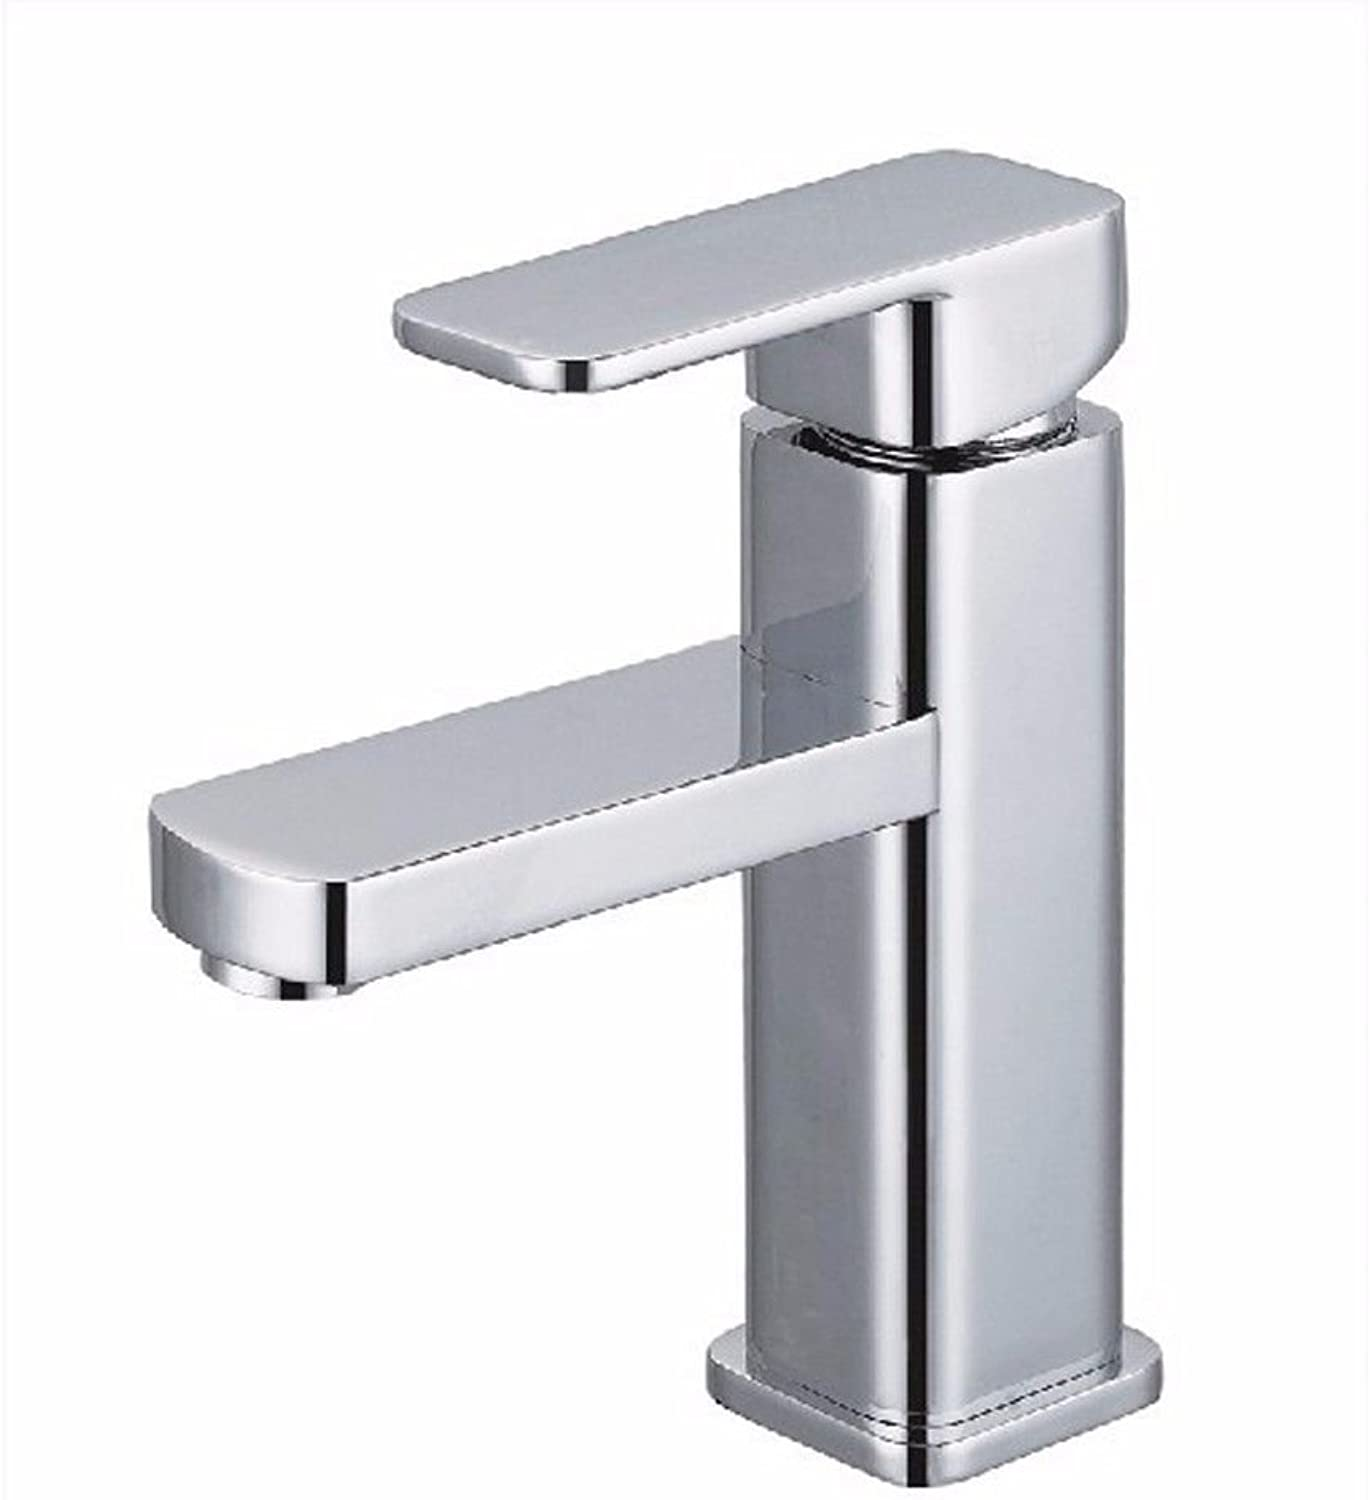 Lalaky Taps Faucet Kitchen Mixer Sink Waterfall Bathroom Mixer Basin Mixer Tap for Kitchen Bathroom and Washroom Copper Chrome Single Handle Single Hole Square Hot and Cold